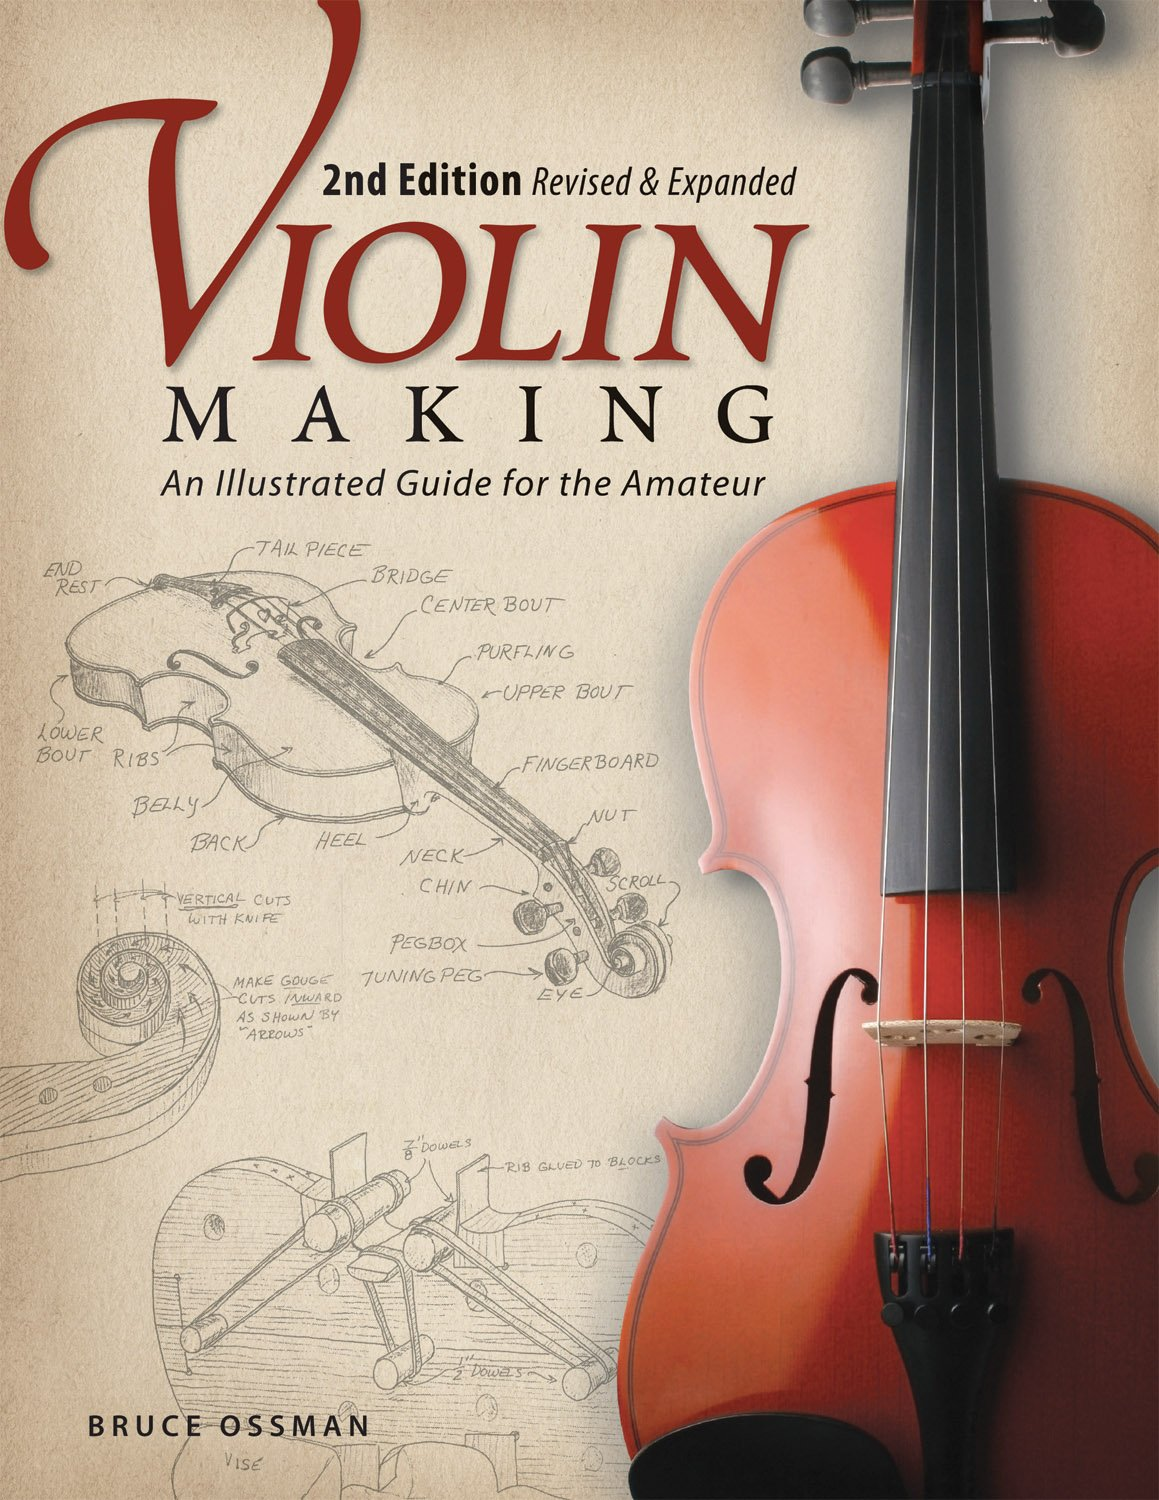 Literature craft and voice 2nd edition - Violin Making Second Edition Revised And Expanded An Illustrated Guide For The Amateur Bruce Ossman 9781565234352 Amazon Com Books